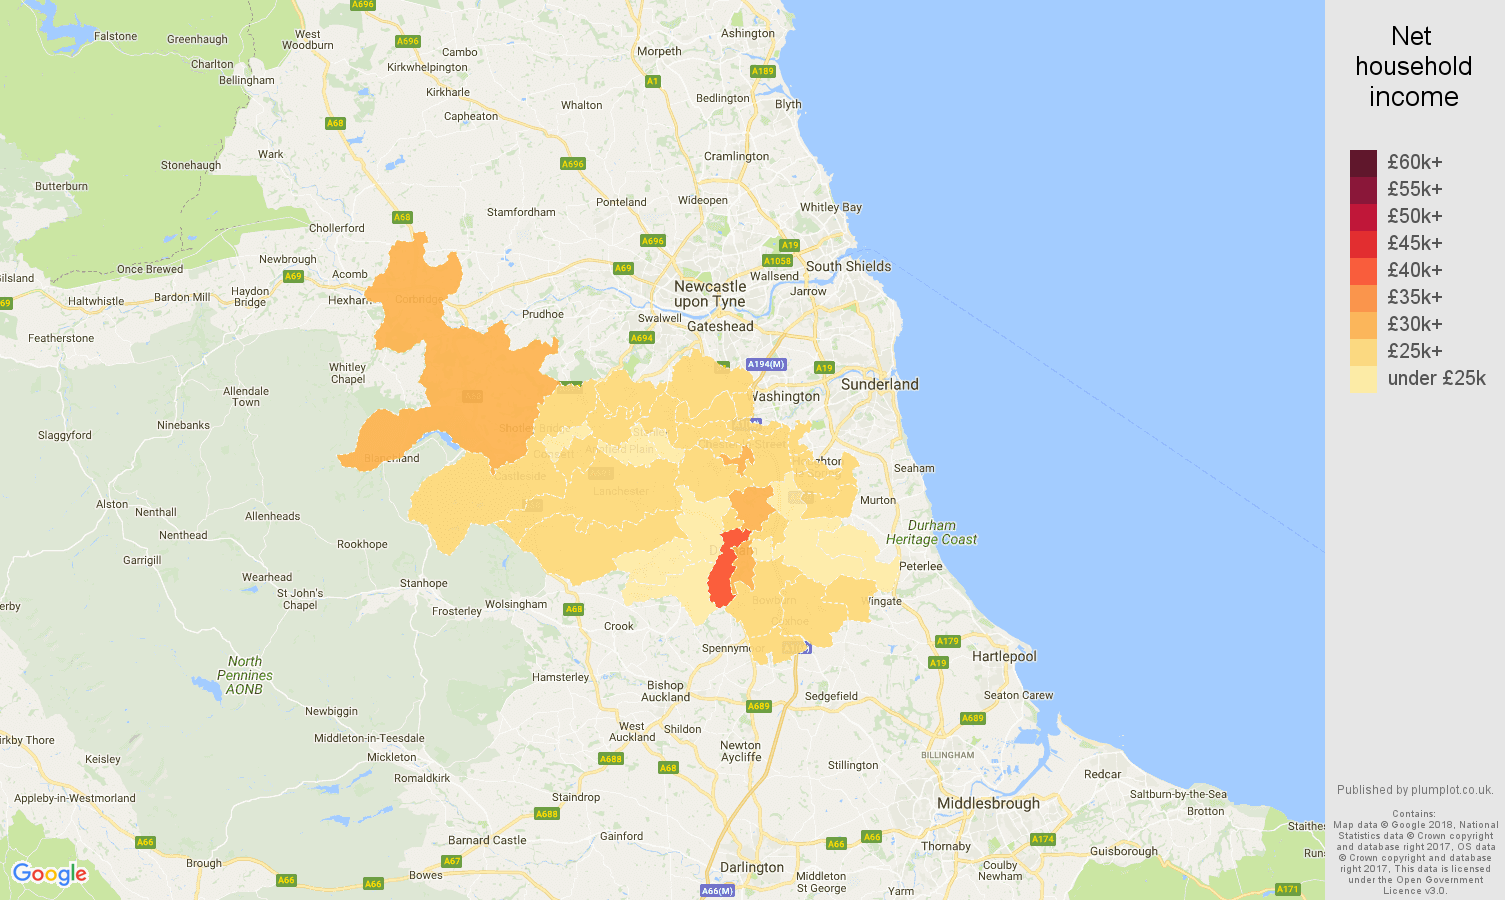 Durham net household income map